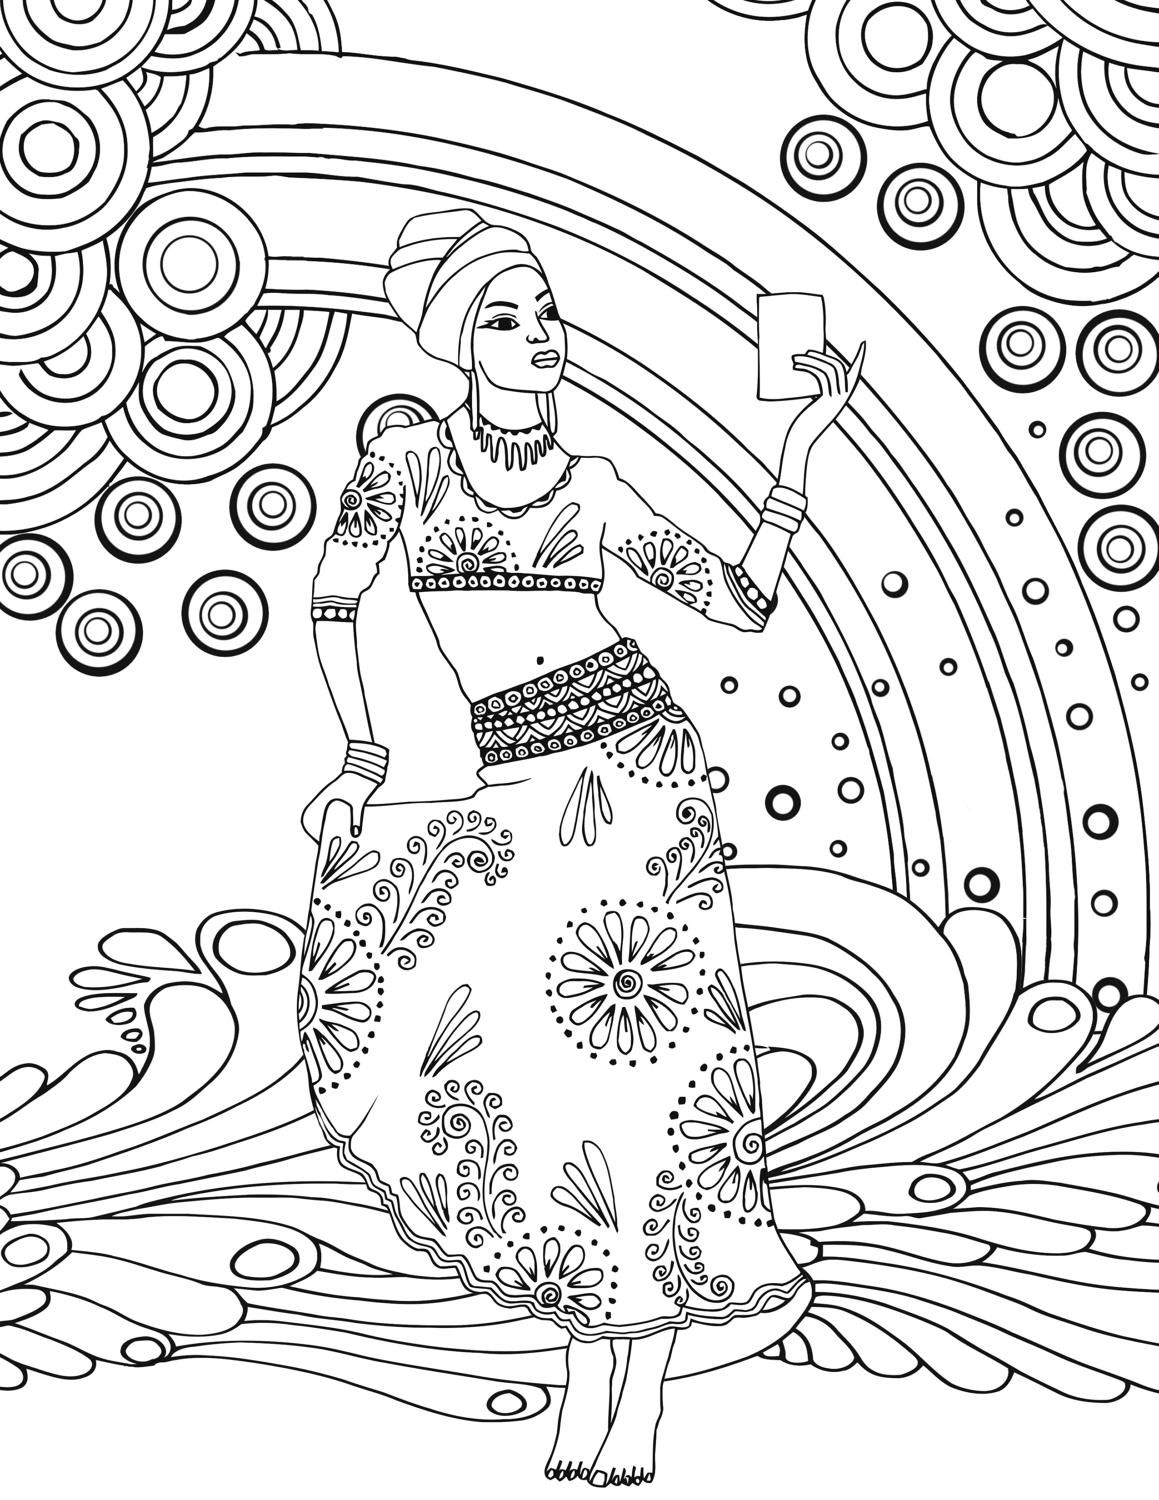 African Goddess Adult Colouring Page Printable By